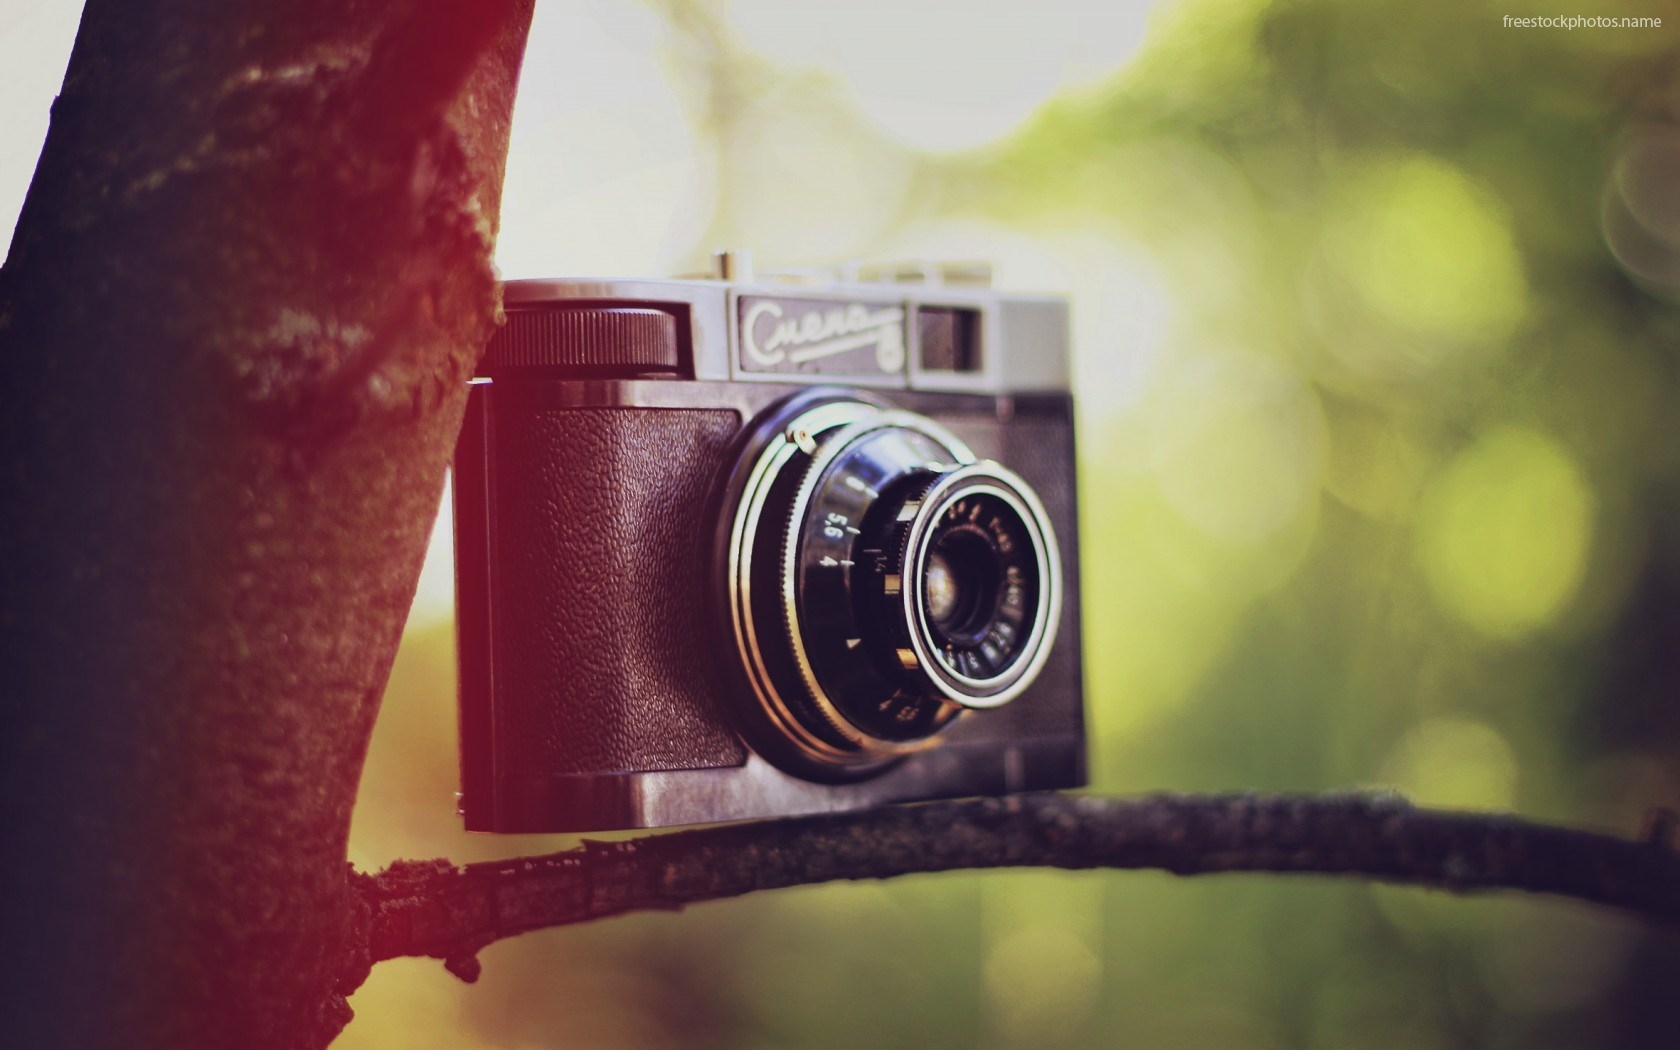 Download Stock Photos of cute camera for wallpaper images photography 1680x1050